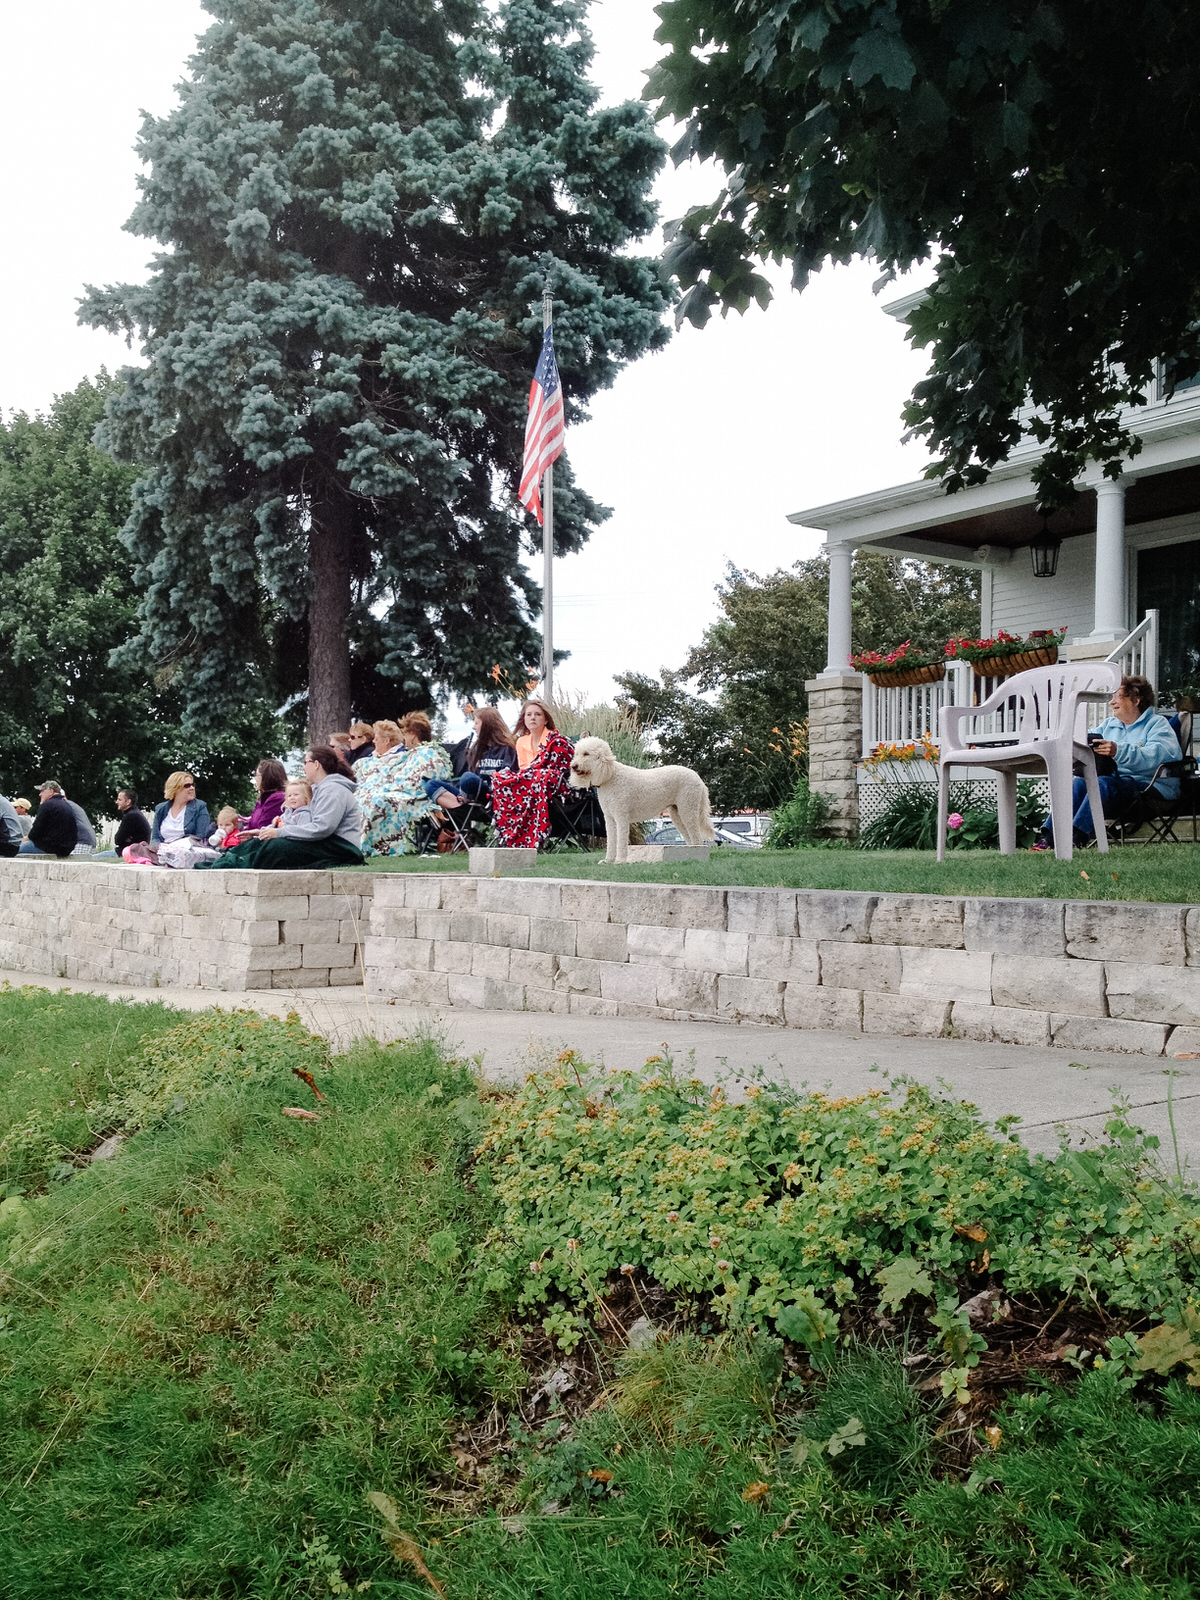 Mount-Calvary-Firemens-Picnic-Parade-Wisconsin-documentary-photography-by-Studio-L-photographer-Laura-Schneider_-1286